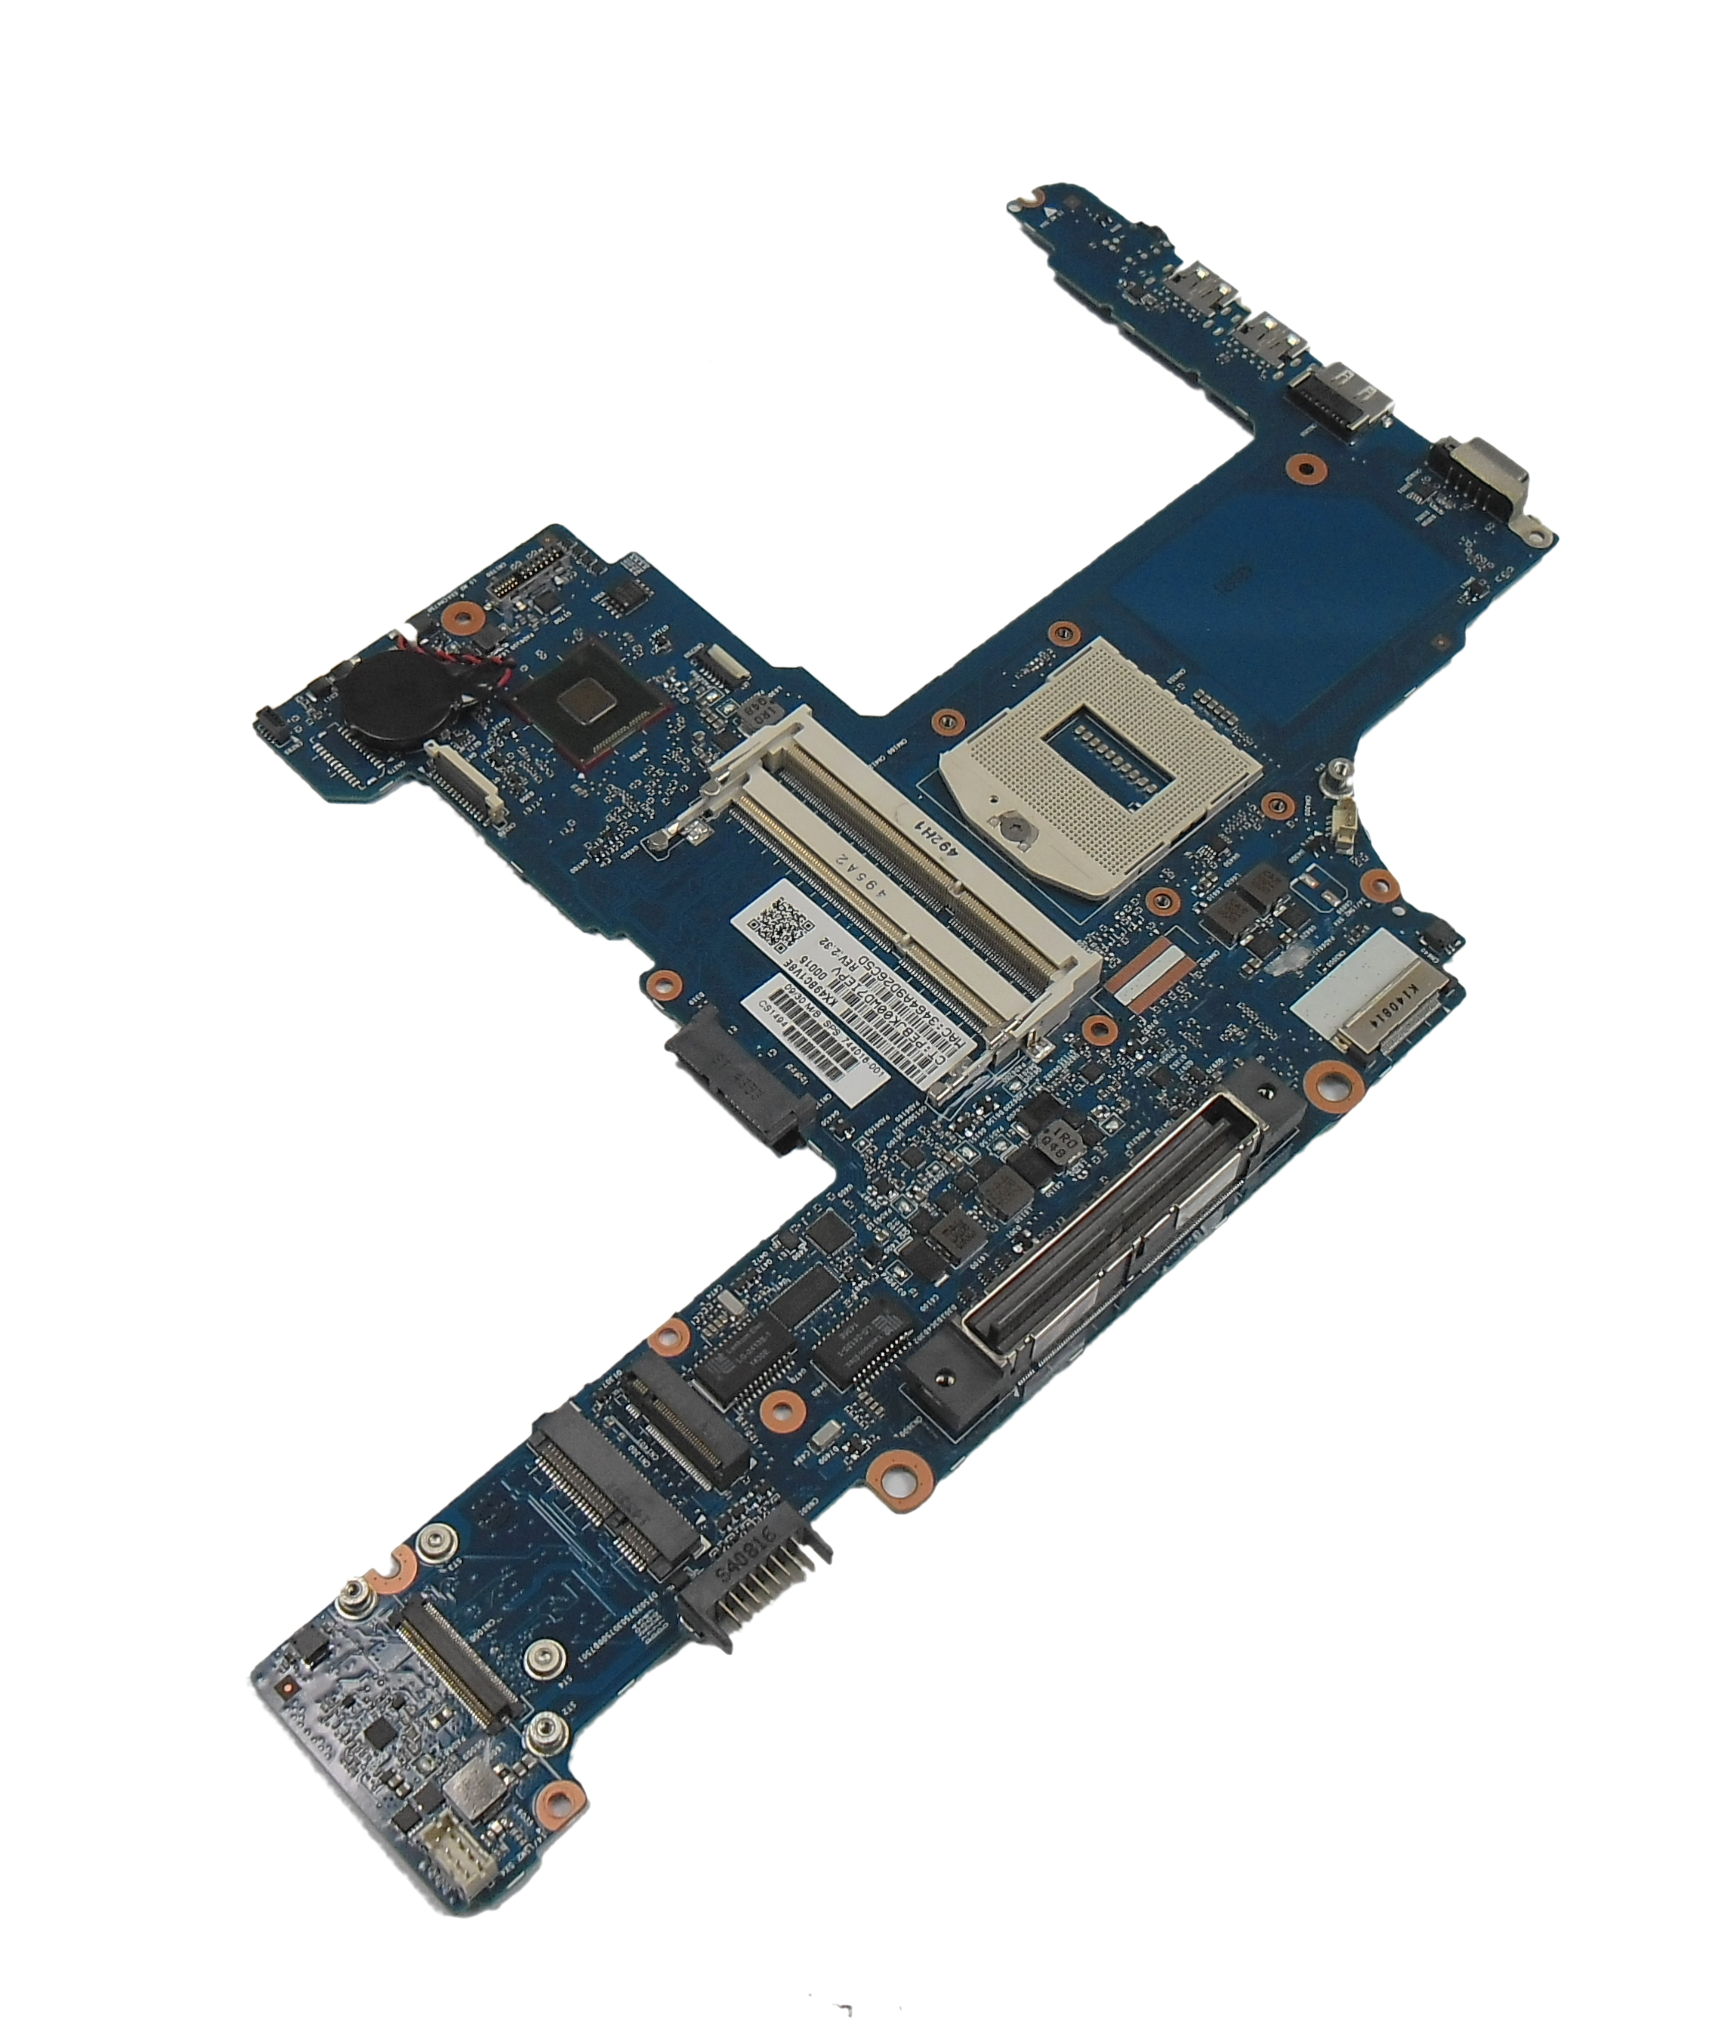 HP 744016-001 ProBook 650 Socket rPGA-947 Laptop Motherboard